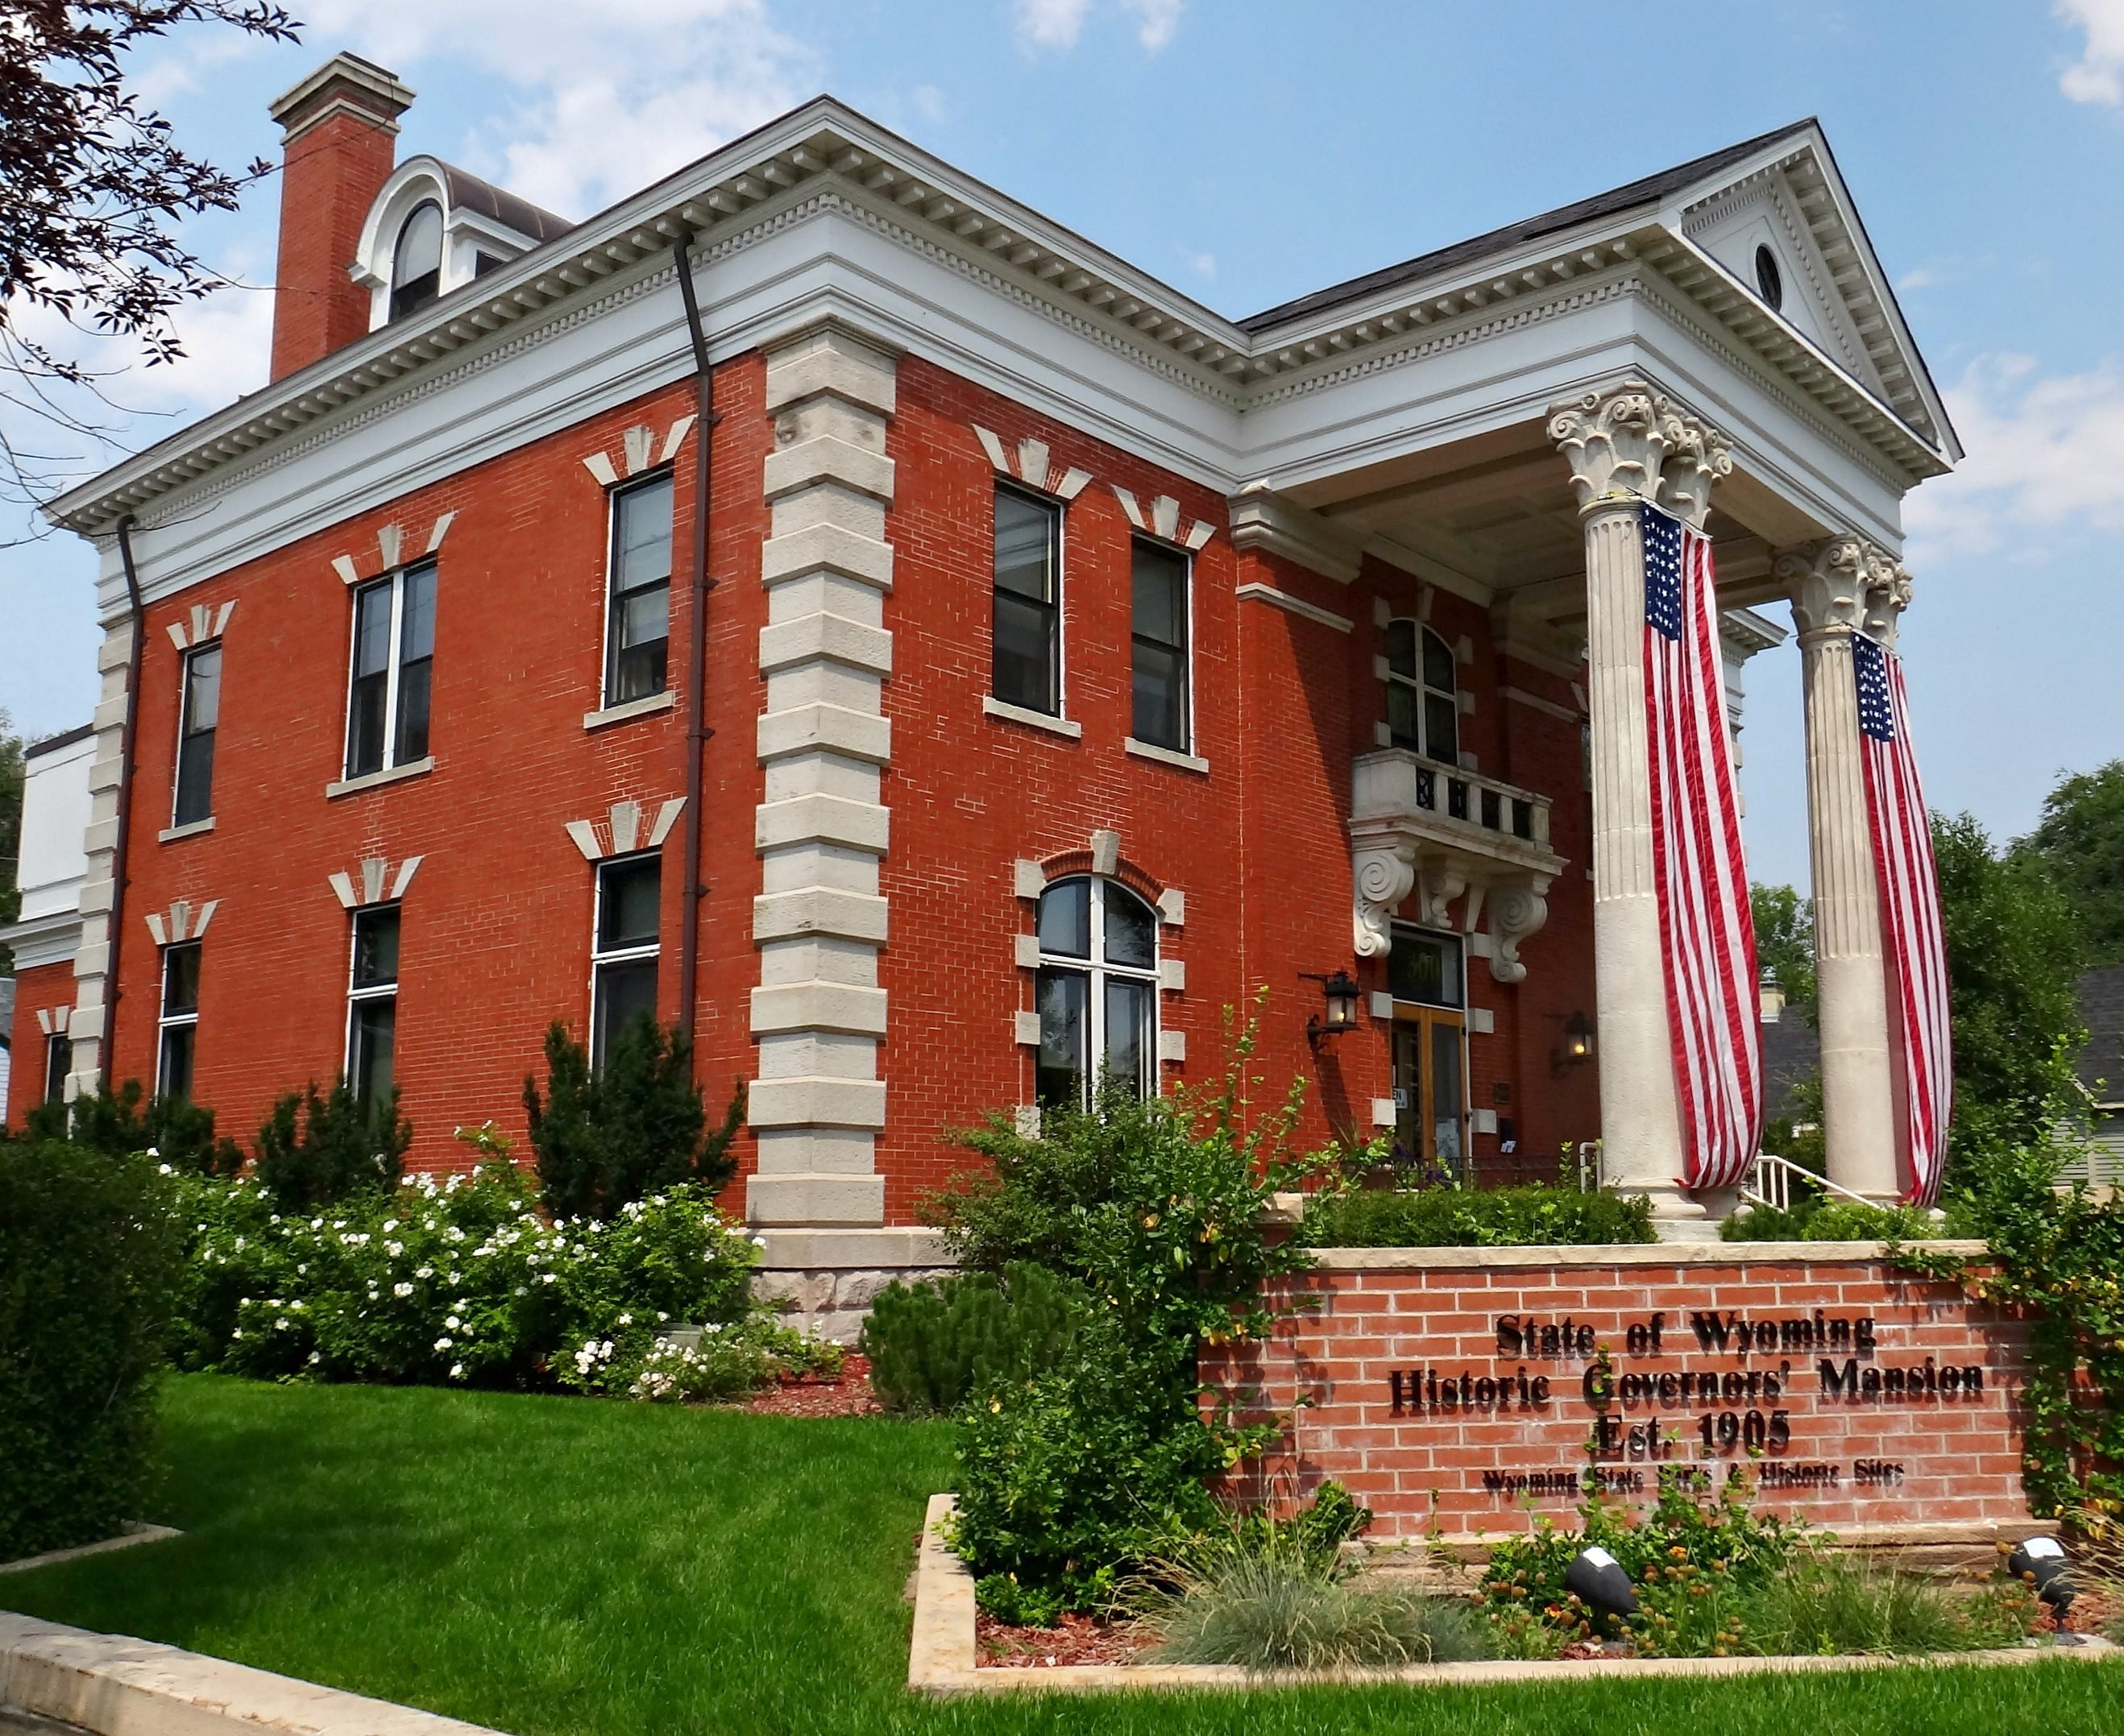 Historic Governors' Mansion in Wyoming